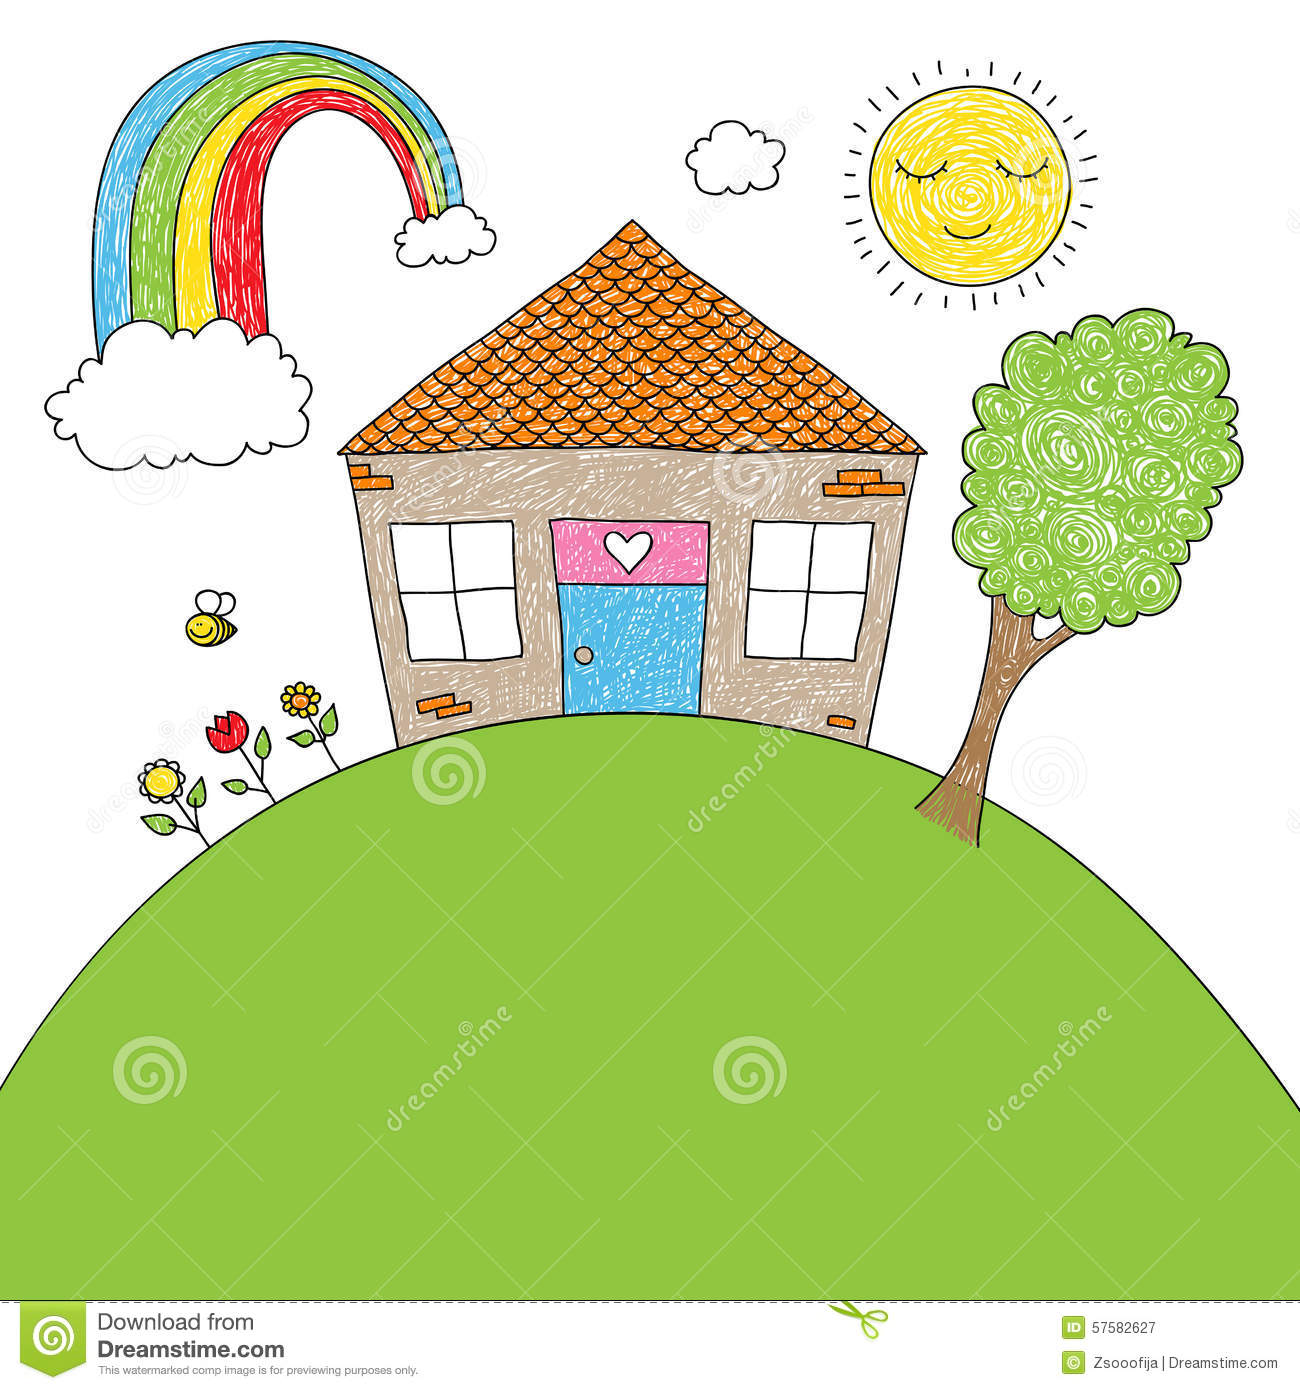 Children 39 S Doodle House Stock Vector Image 57582627